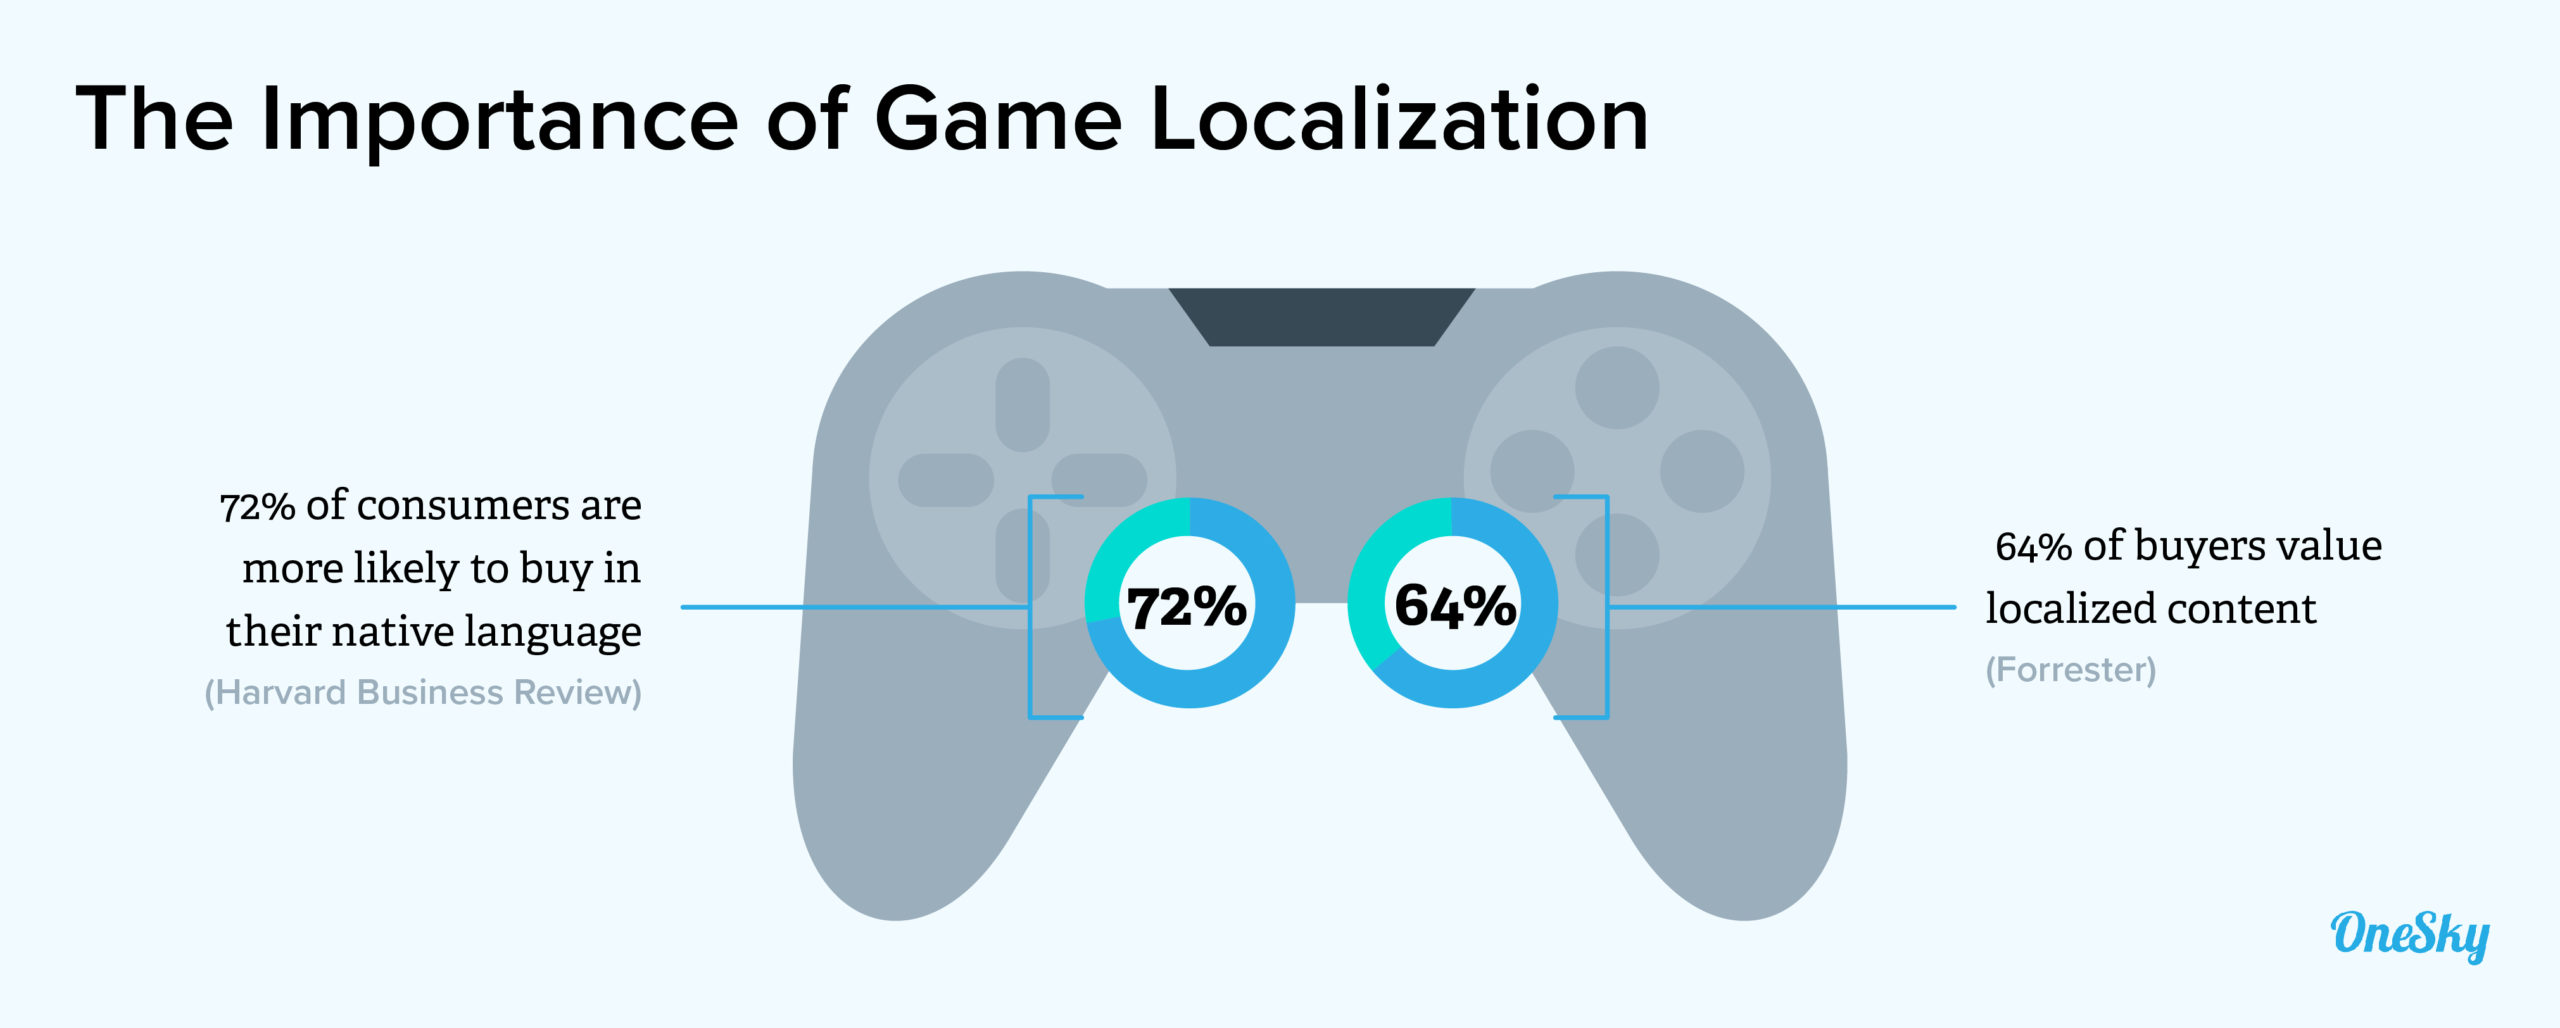 Why Does Game Localization Matter